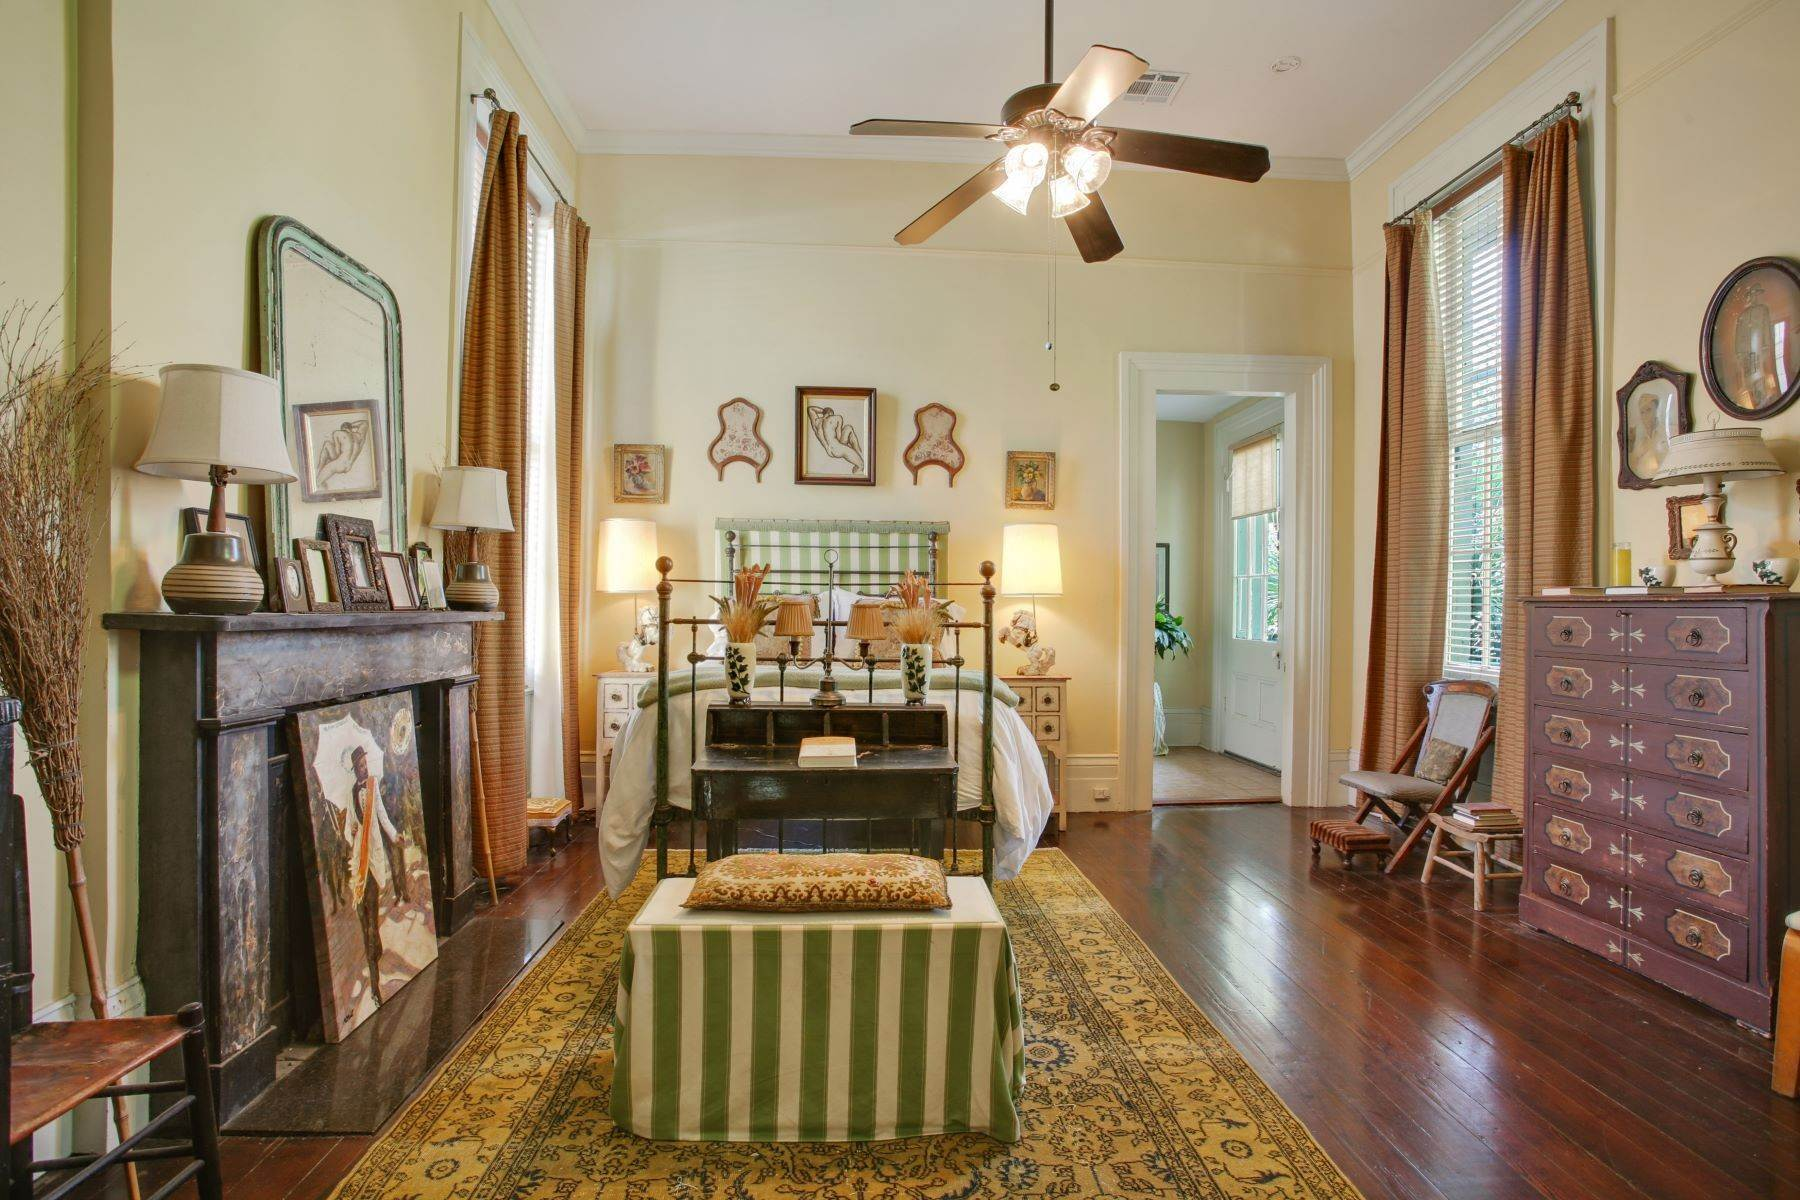 16. Single Family Homes for Sale at 1216 CAMP Street 1216 Camp St New Orleans, Louisiana 70130 United States